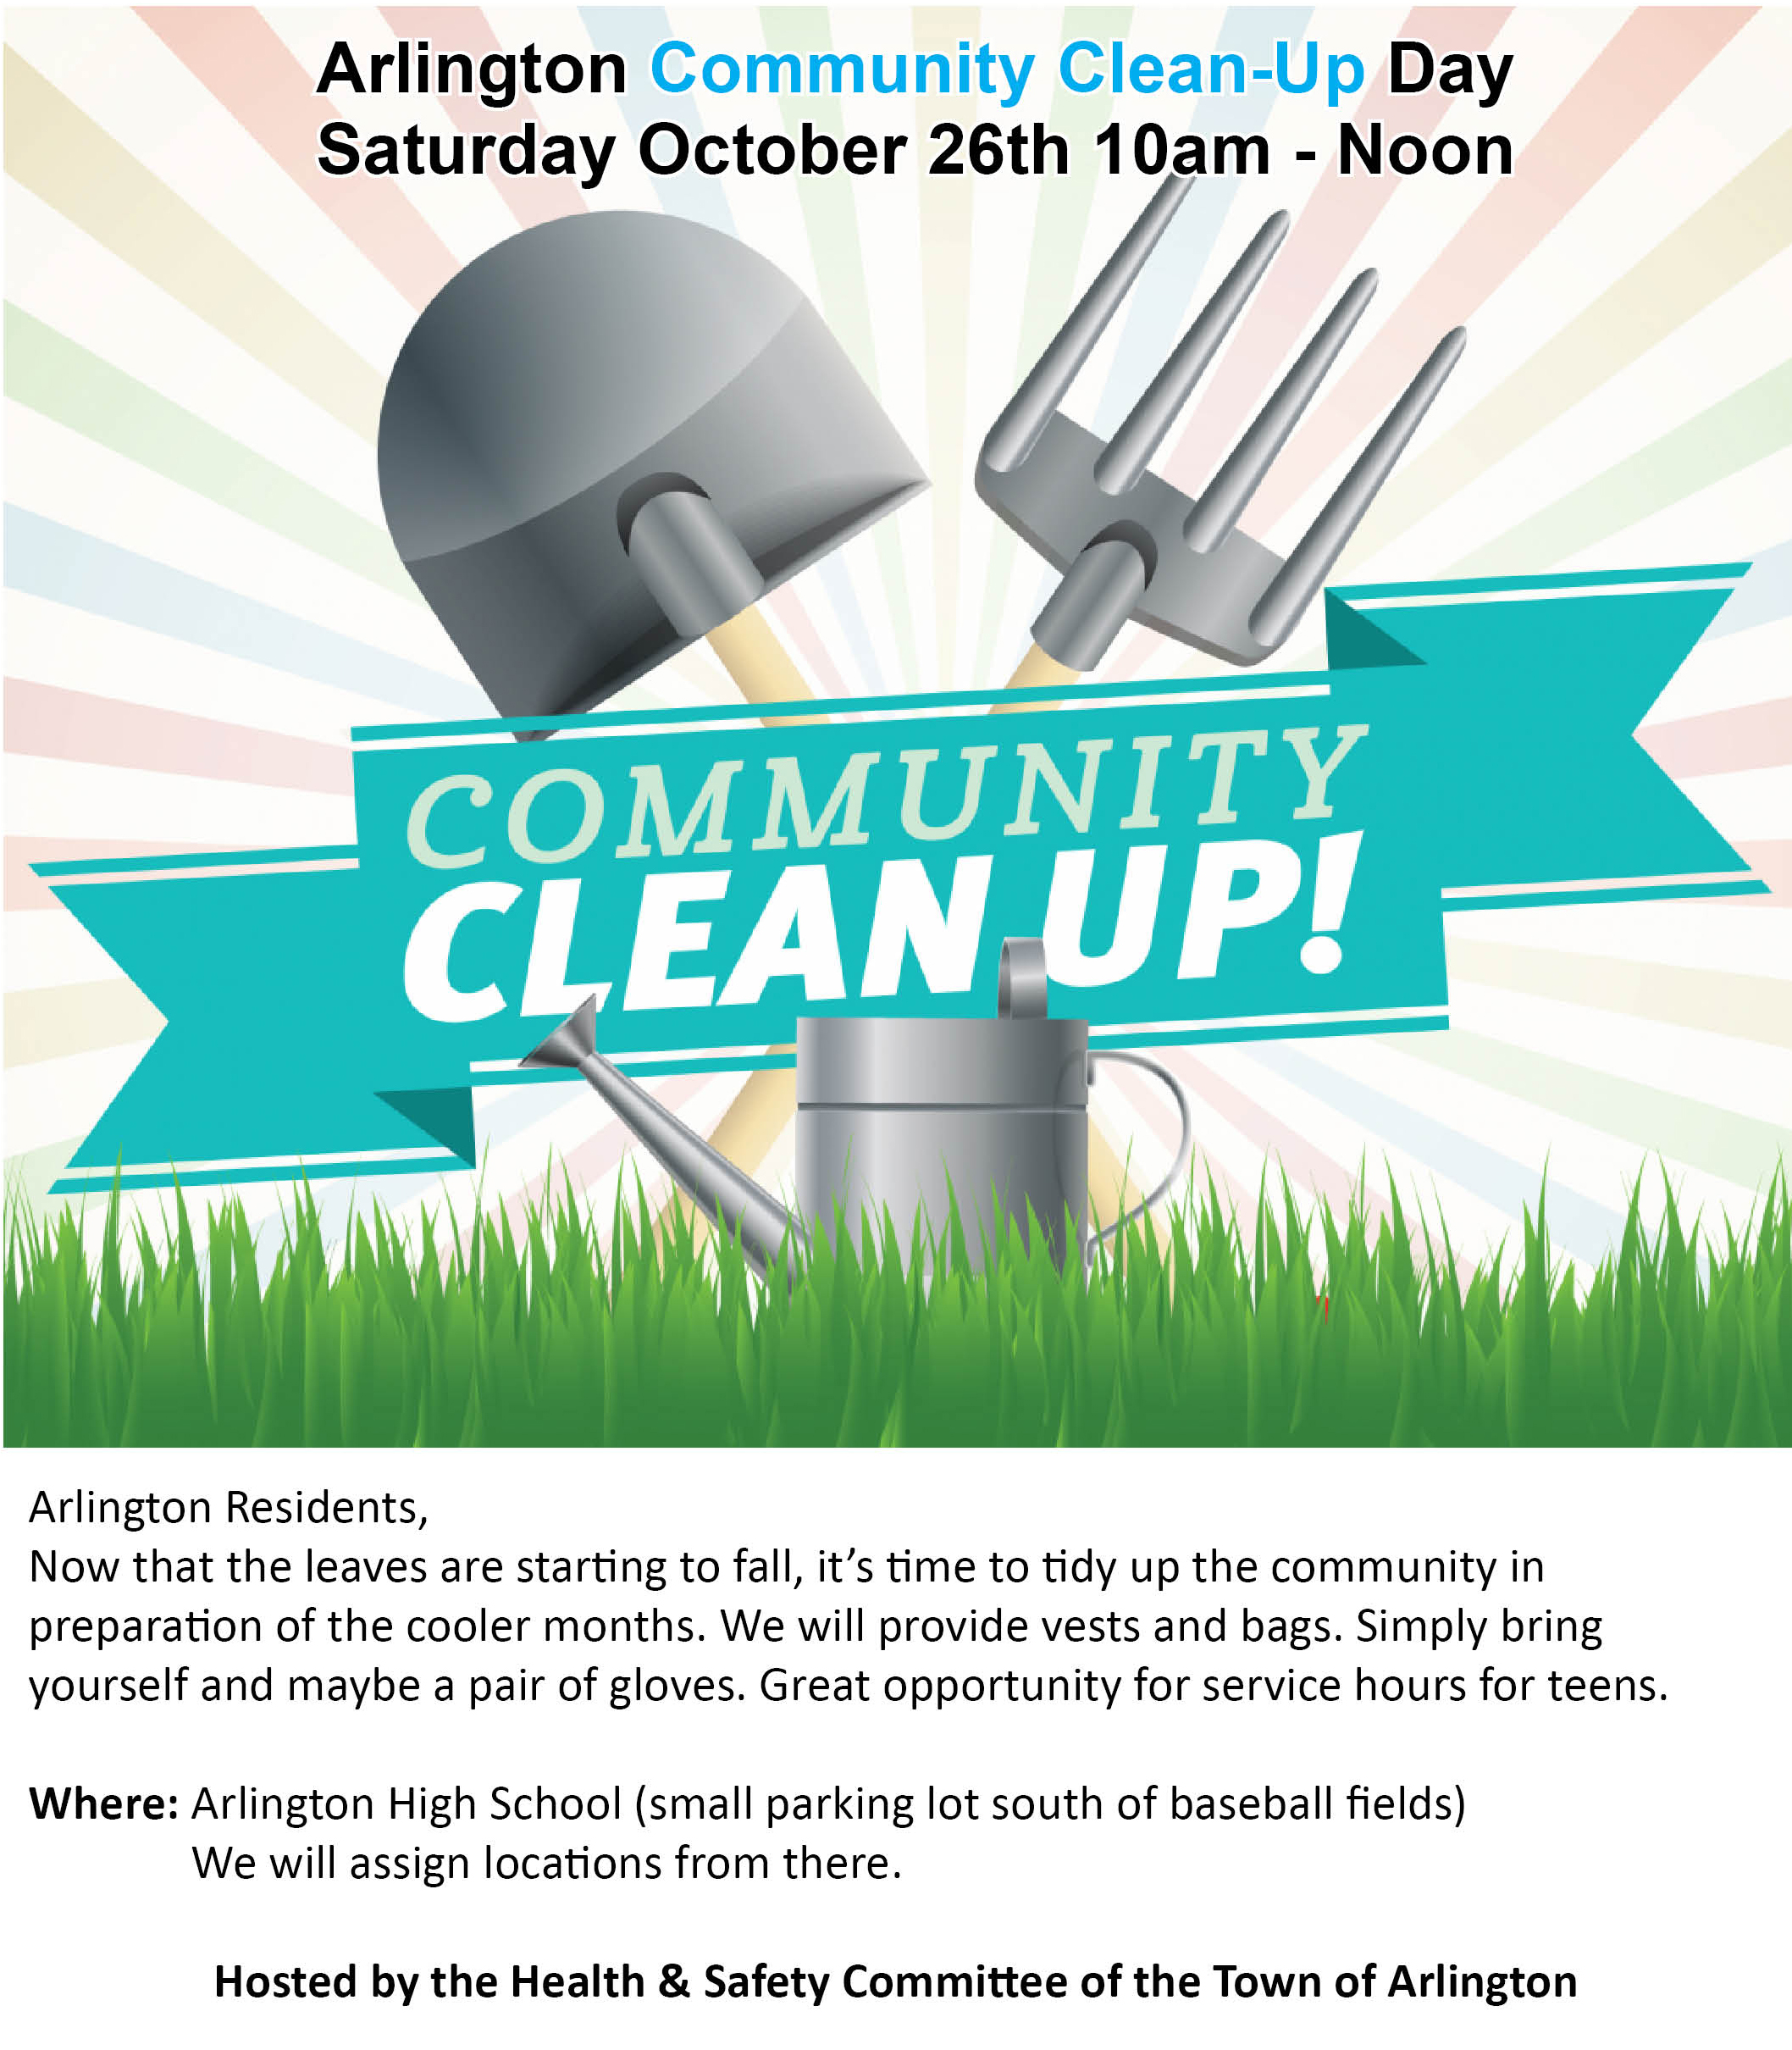 Community Clean Up Flyer 2019